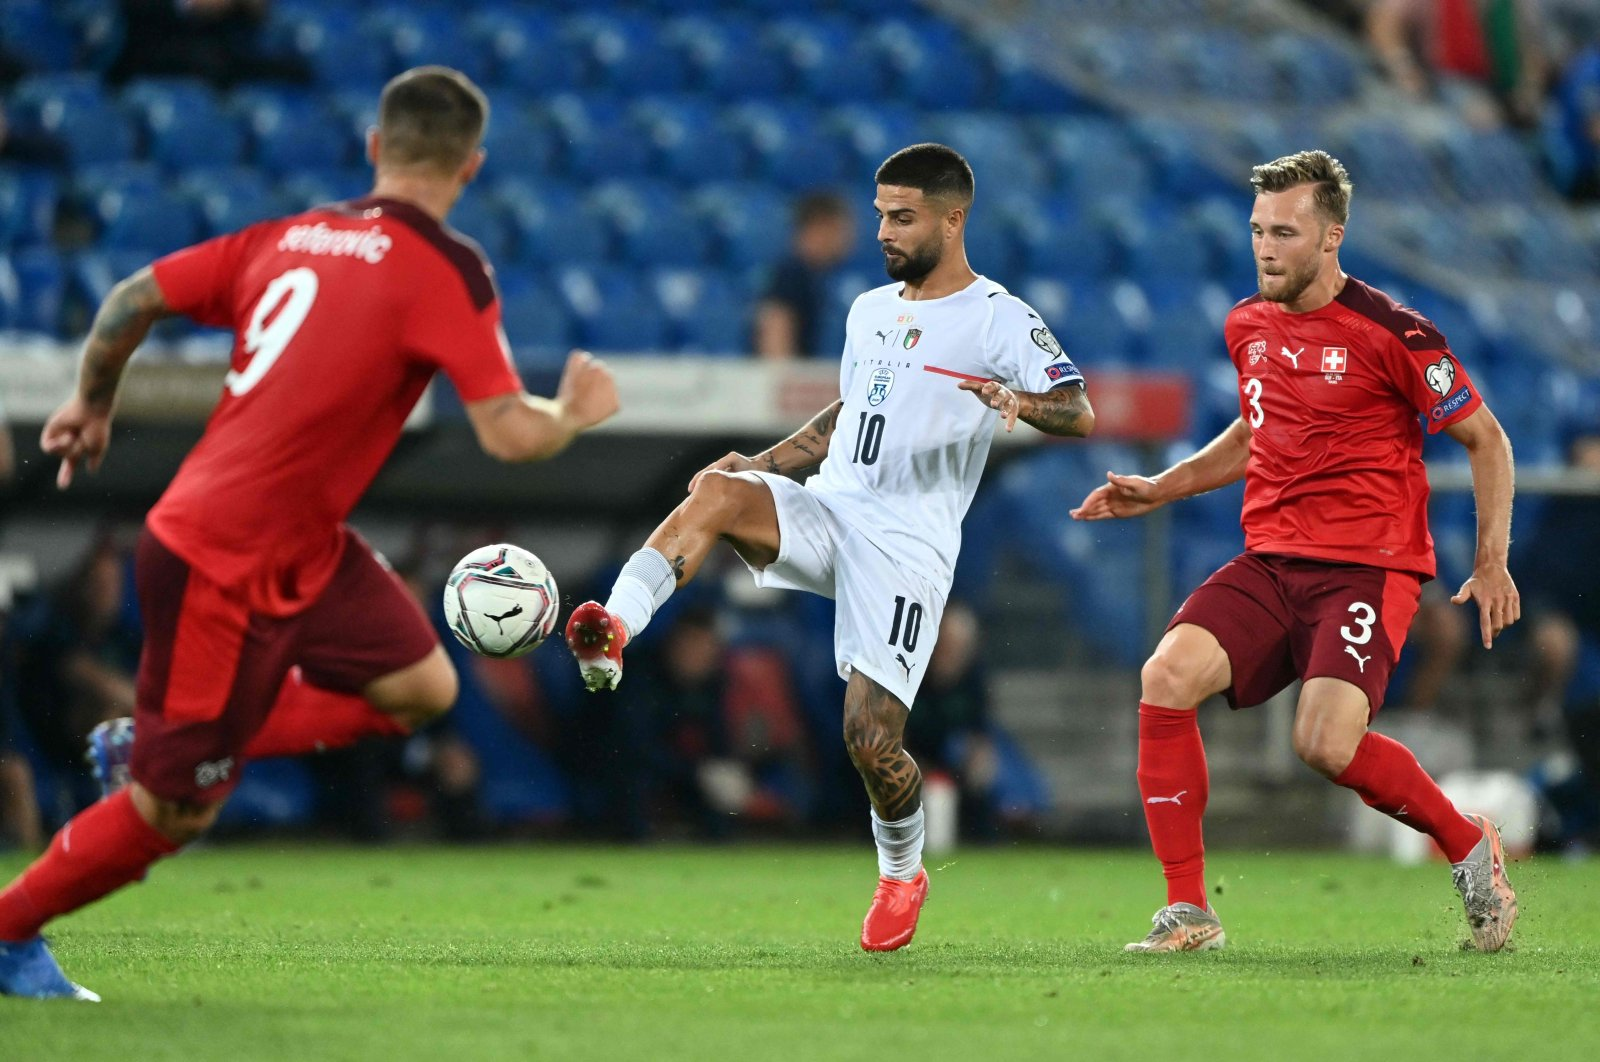 Italy's Lorenzo Insigne (C) controls the ball next to Switzerland's defender Silvan Widmer (R) during the World Cup 2022 qualifier at St. Jakob-Park stadium in Basel, Switzerland, Sept. 5, 2021. (AFP Photo)